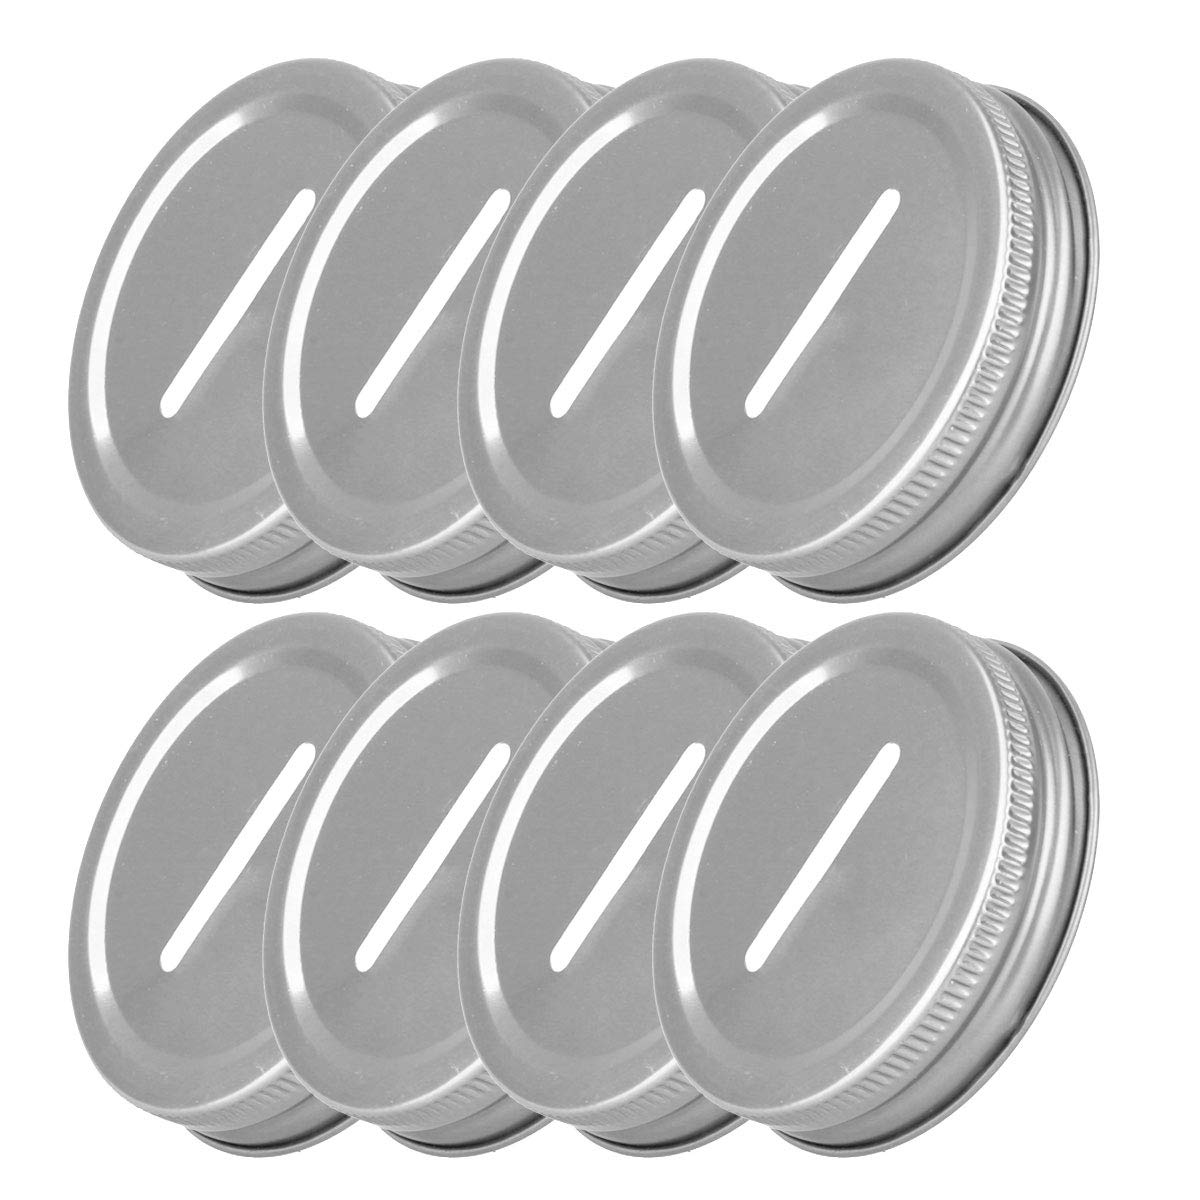 TiaoBug 8 Pieces Metal Coin Slot Bank Lids for Mason Jar Ball Canning Jars Silver One Size